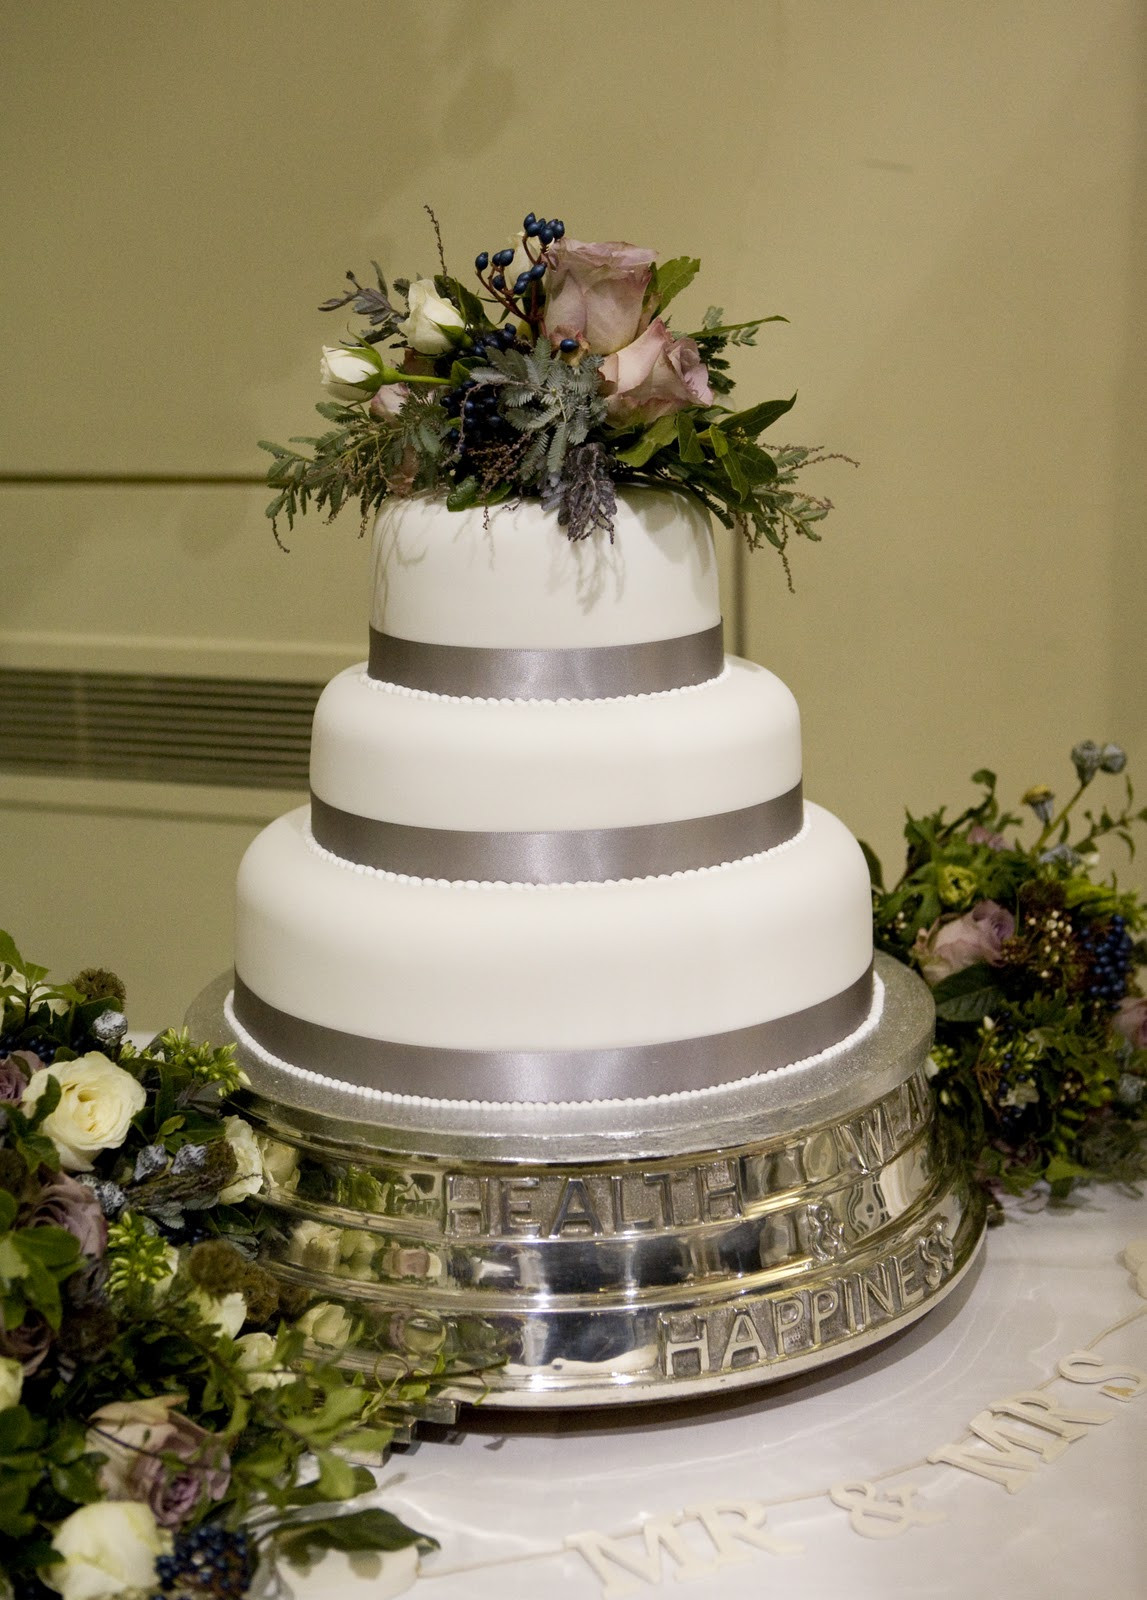 Cake Plateaus For Wedding Cakes  Vintage cake stands for weddings idea in 2017